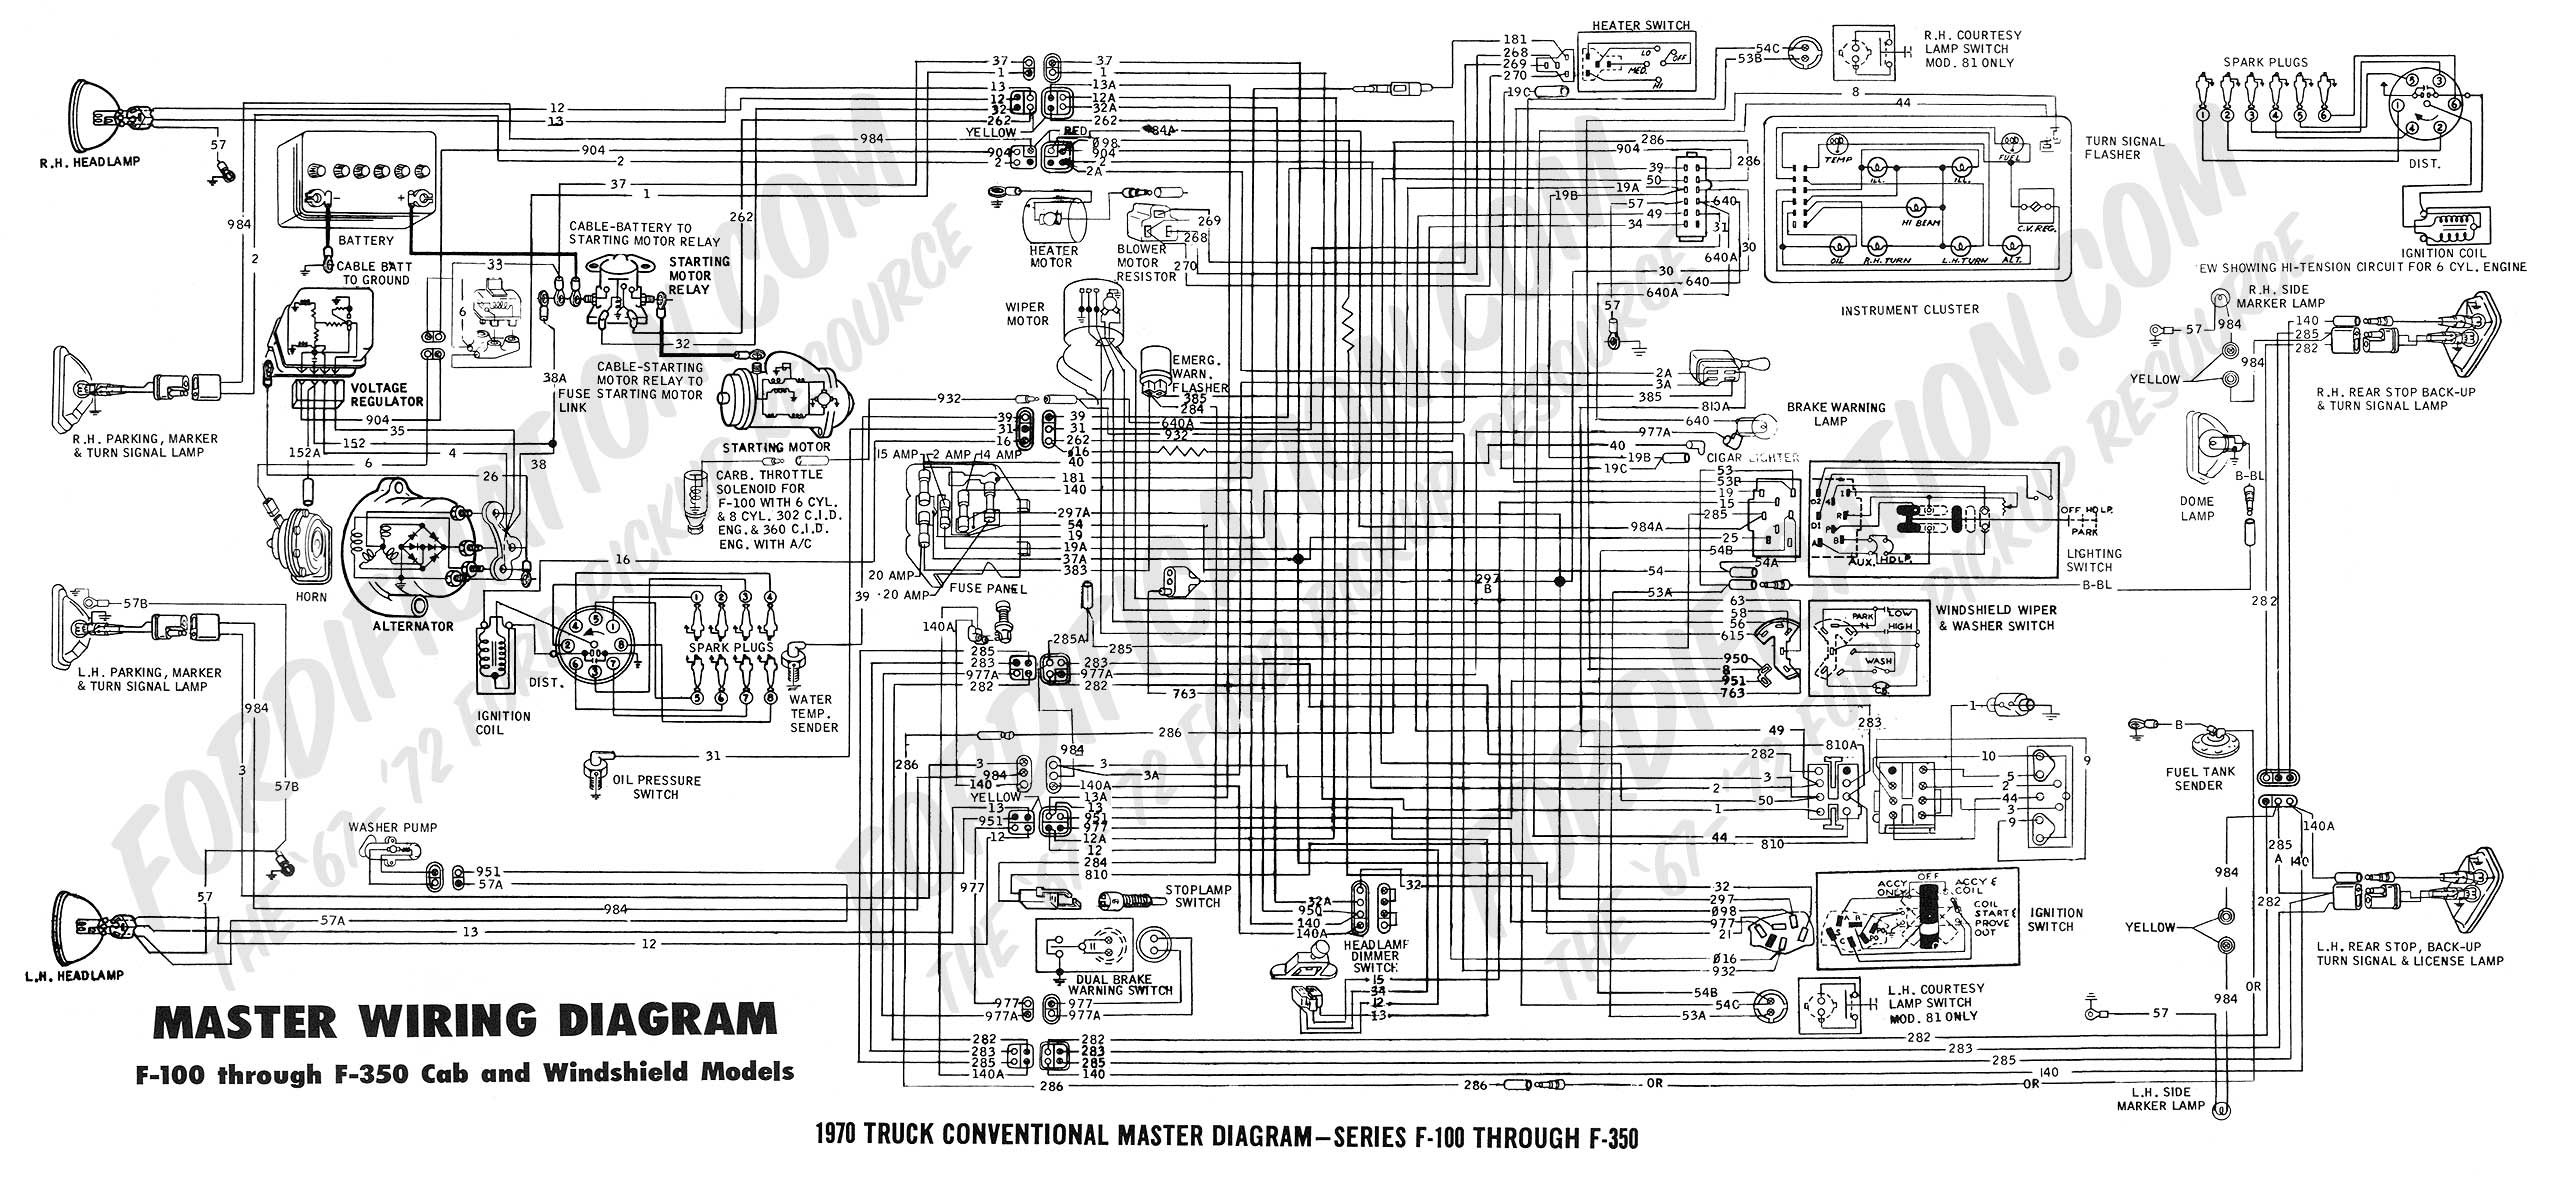 Ford Truck Technical Drawings and Schematics - Section H ... on circuit breaker for air conditioner, compressor for air conditioner, frame for air conditioner, battery for air conditioner, schematic for air conditioner, hard start kit for air conditioner, fuse for air conditioner, transfer switch for air conditioner, repair for air conditioner, remote control for air conditioner, water pump for air conditioner, accessories for air conditioner, coil for air conditioner, sensor for air conditioner, parts for air conditioner, plug for air conditioner, control panel for air conditioner, connector for air conditioner, cable for air conditioner, wiring diagram motor,